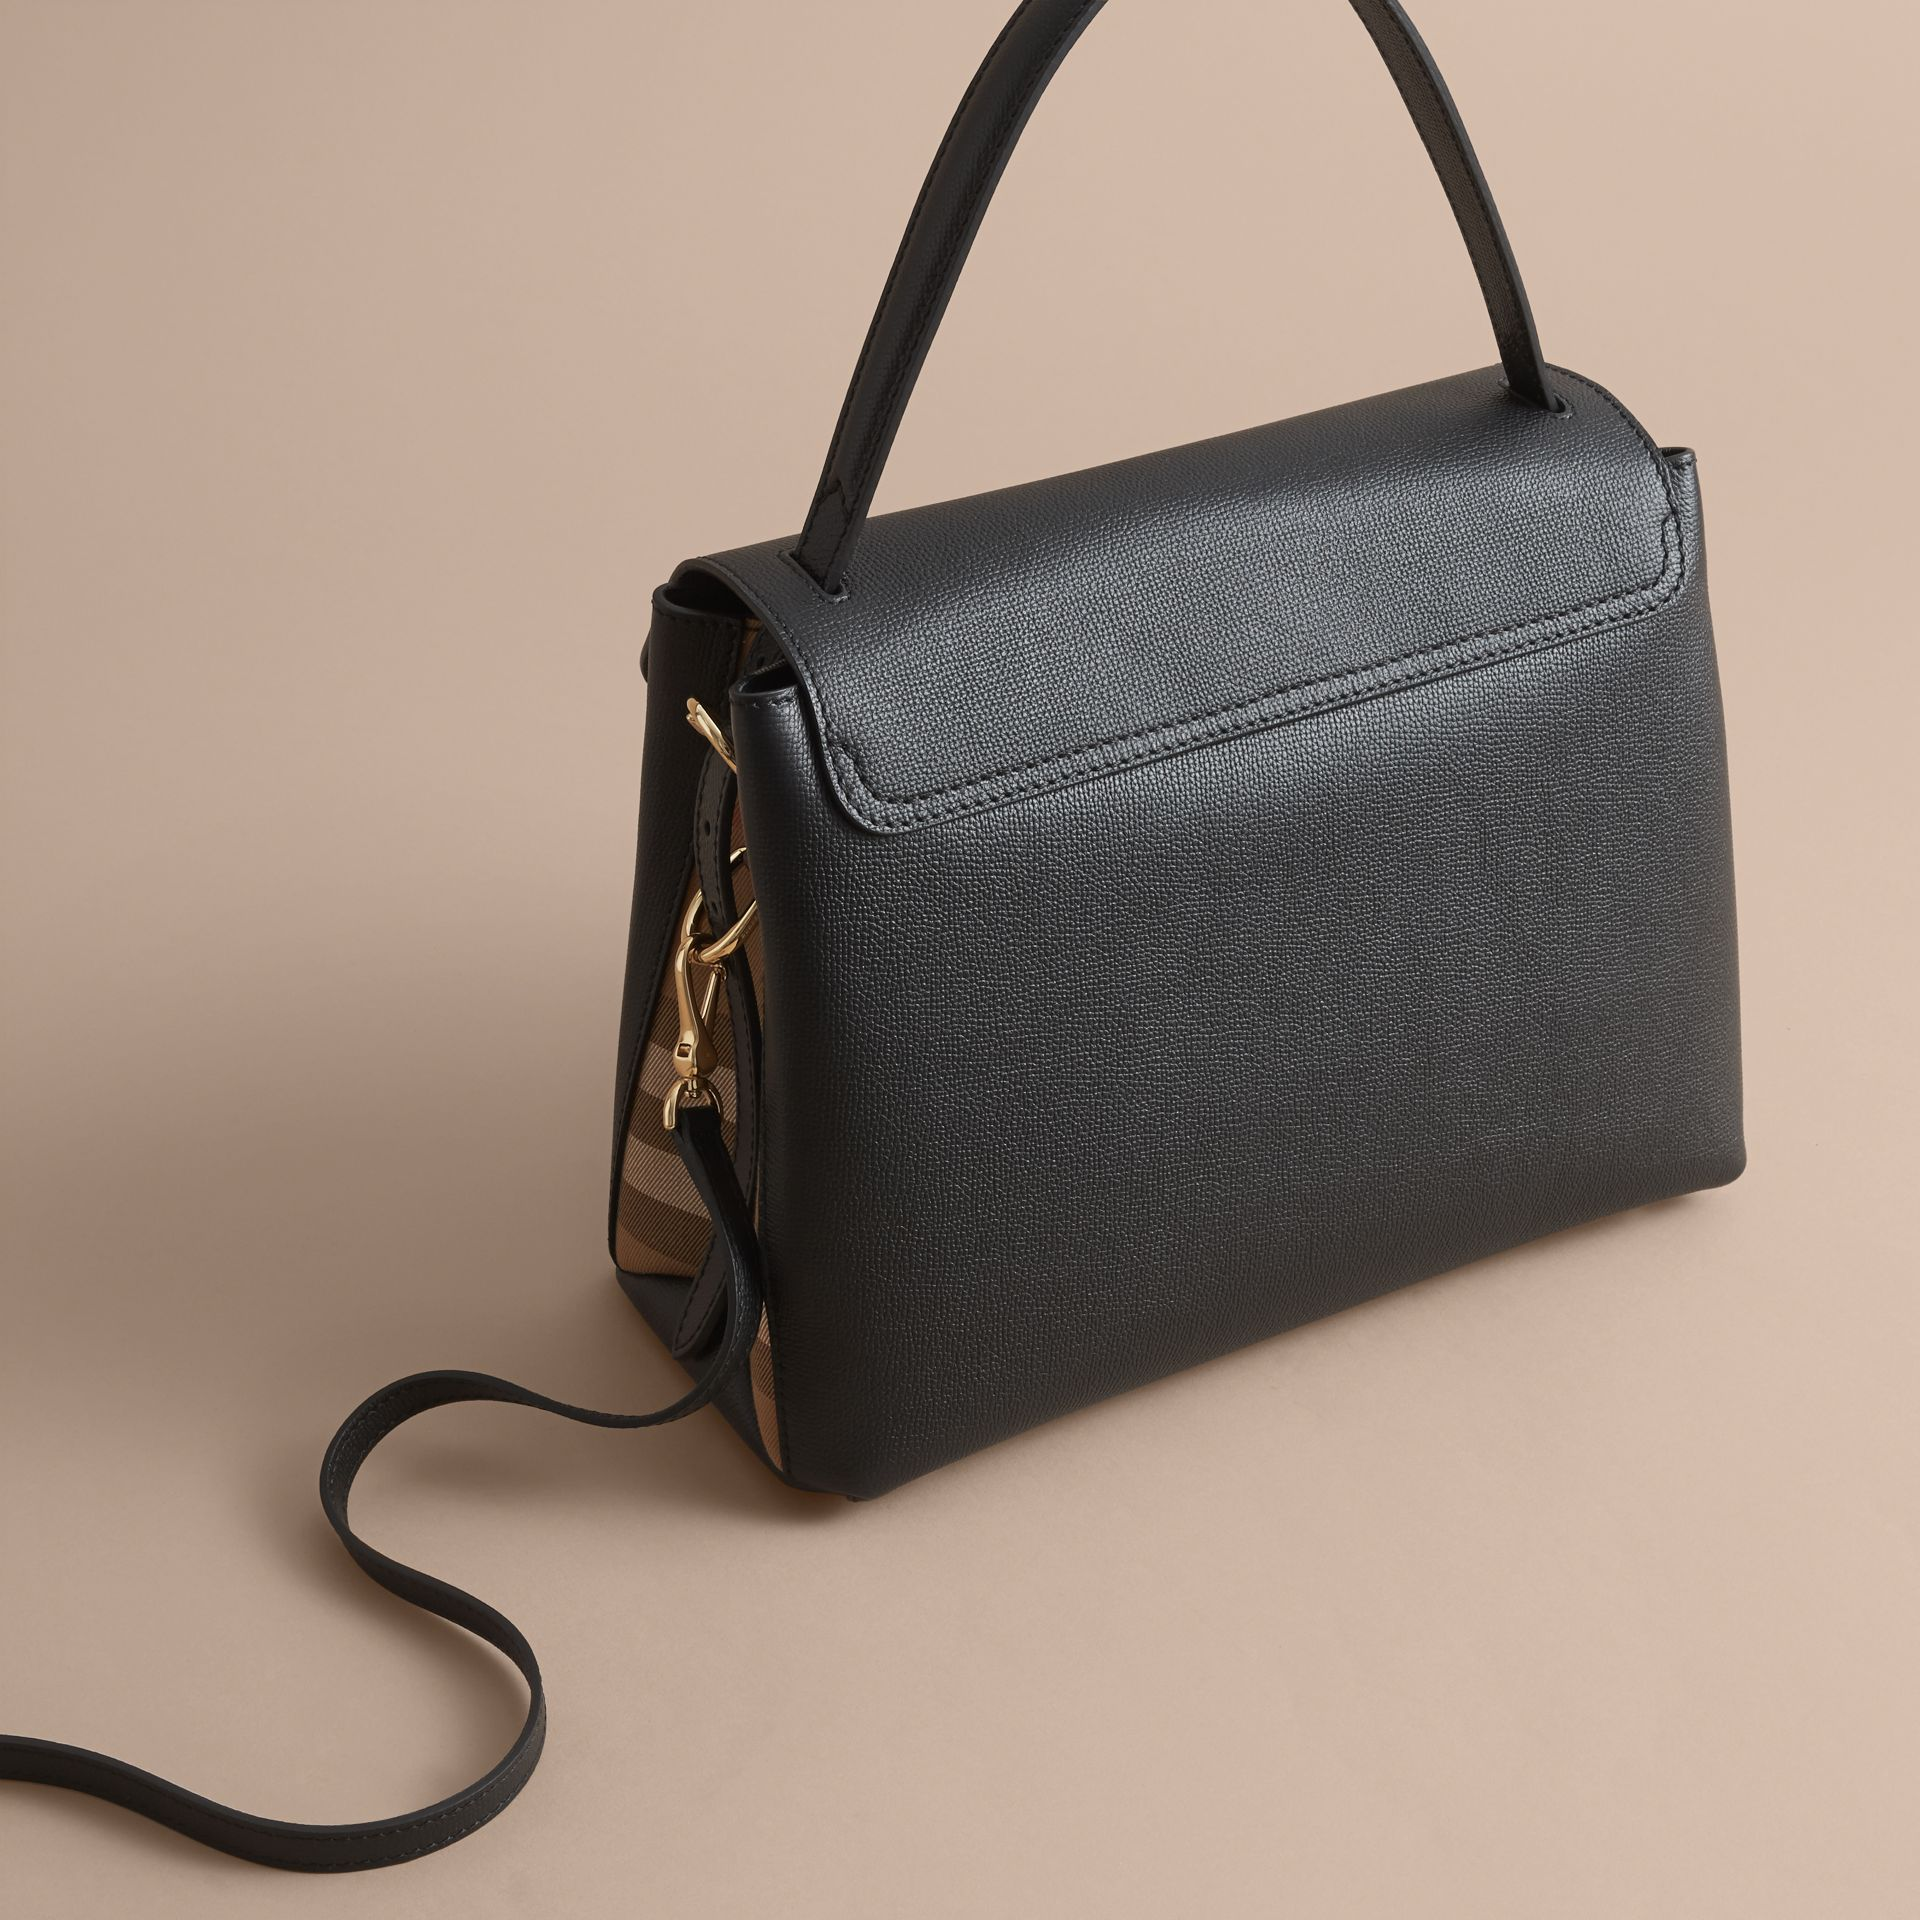 Medium Grainy Leather and House Check Tote Bag in Black - Women | Burberry - gallery image 5